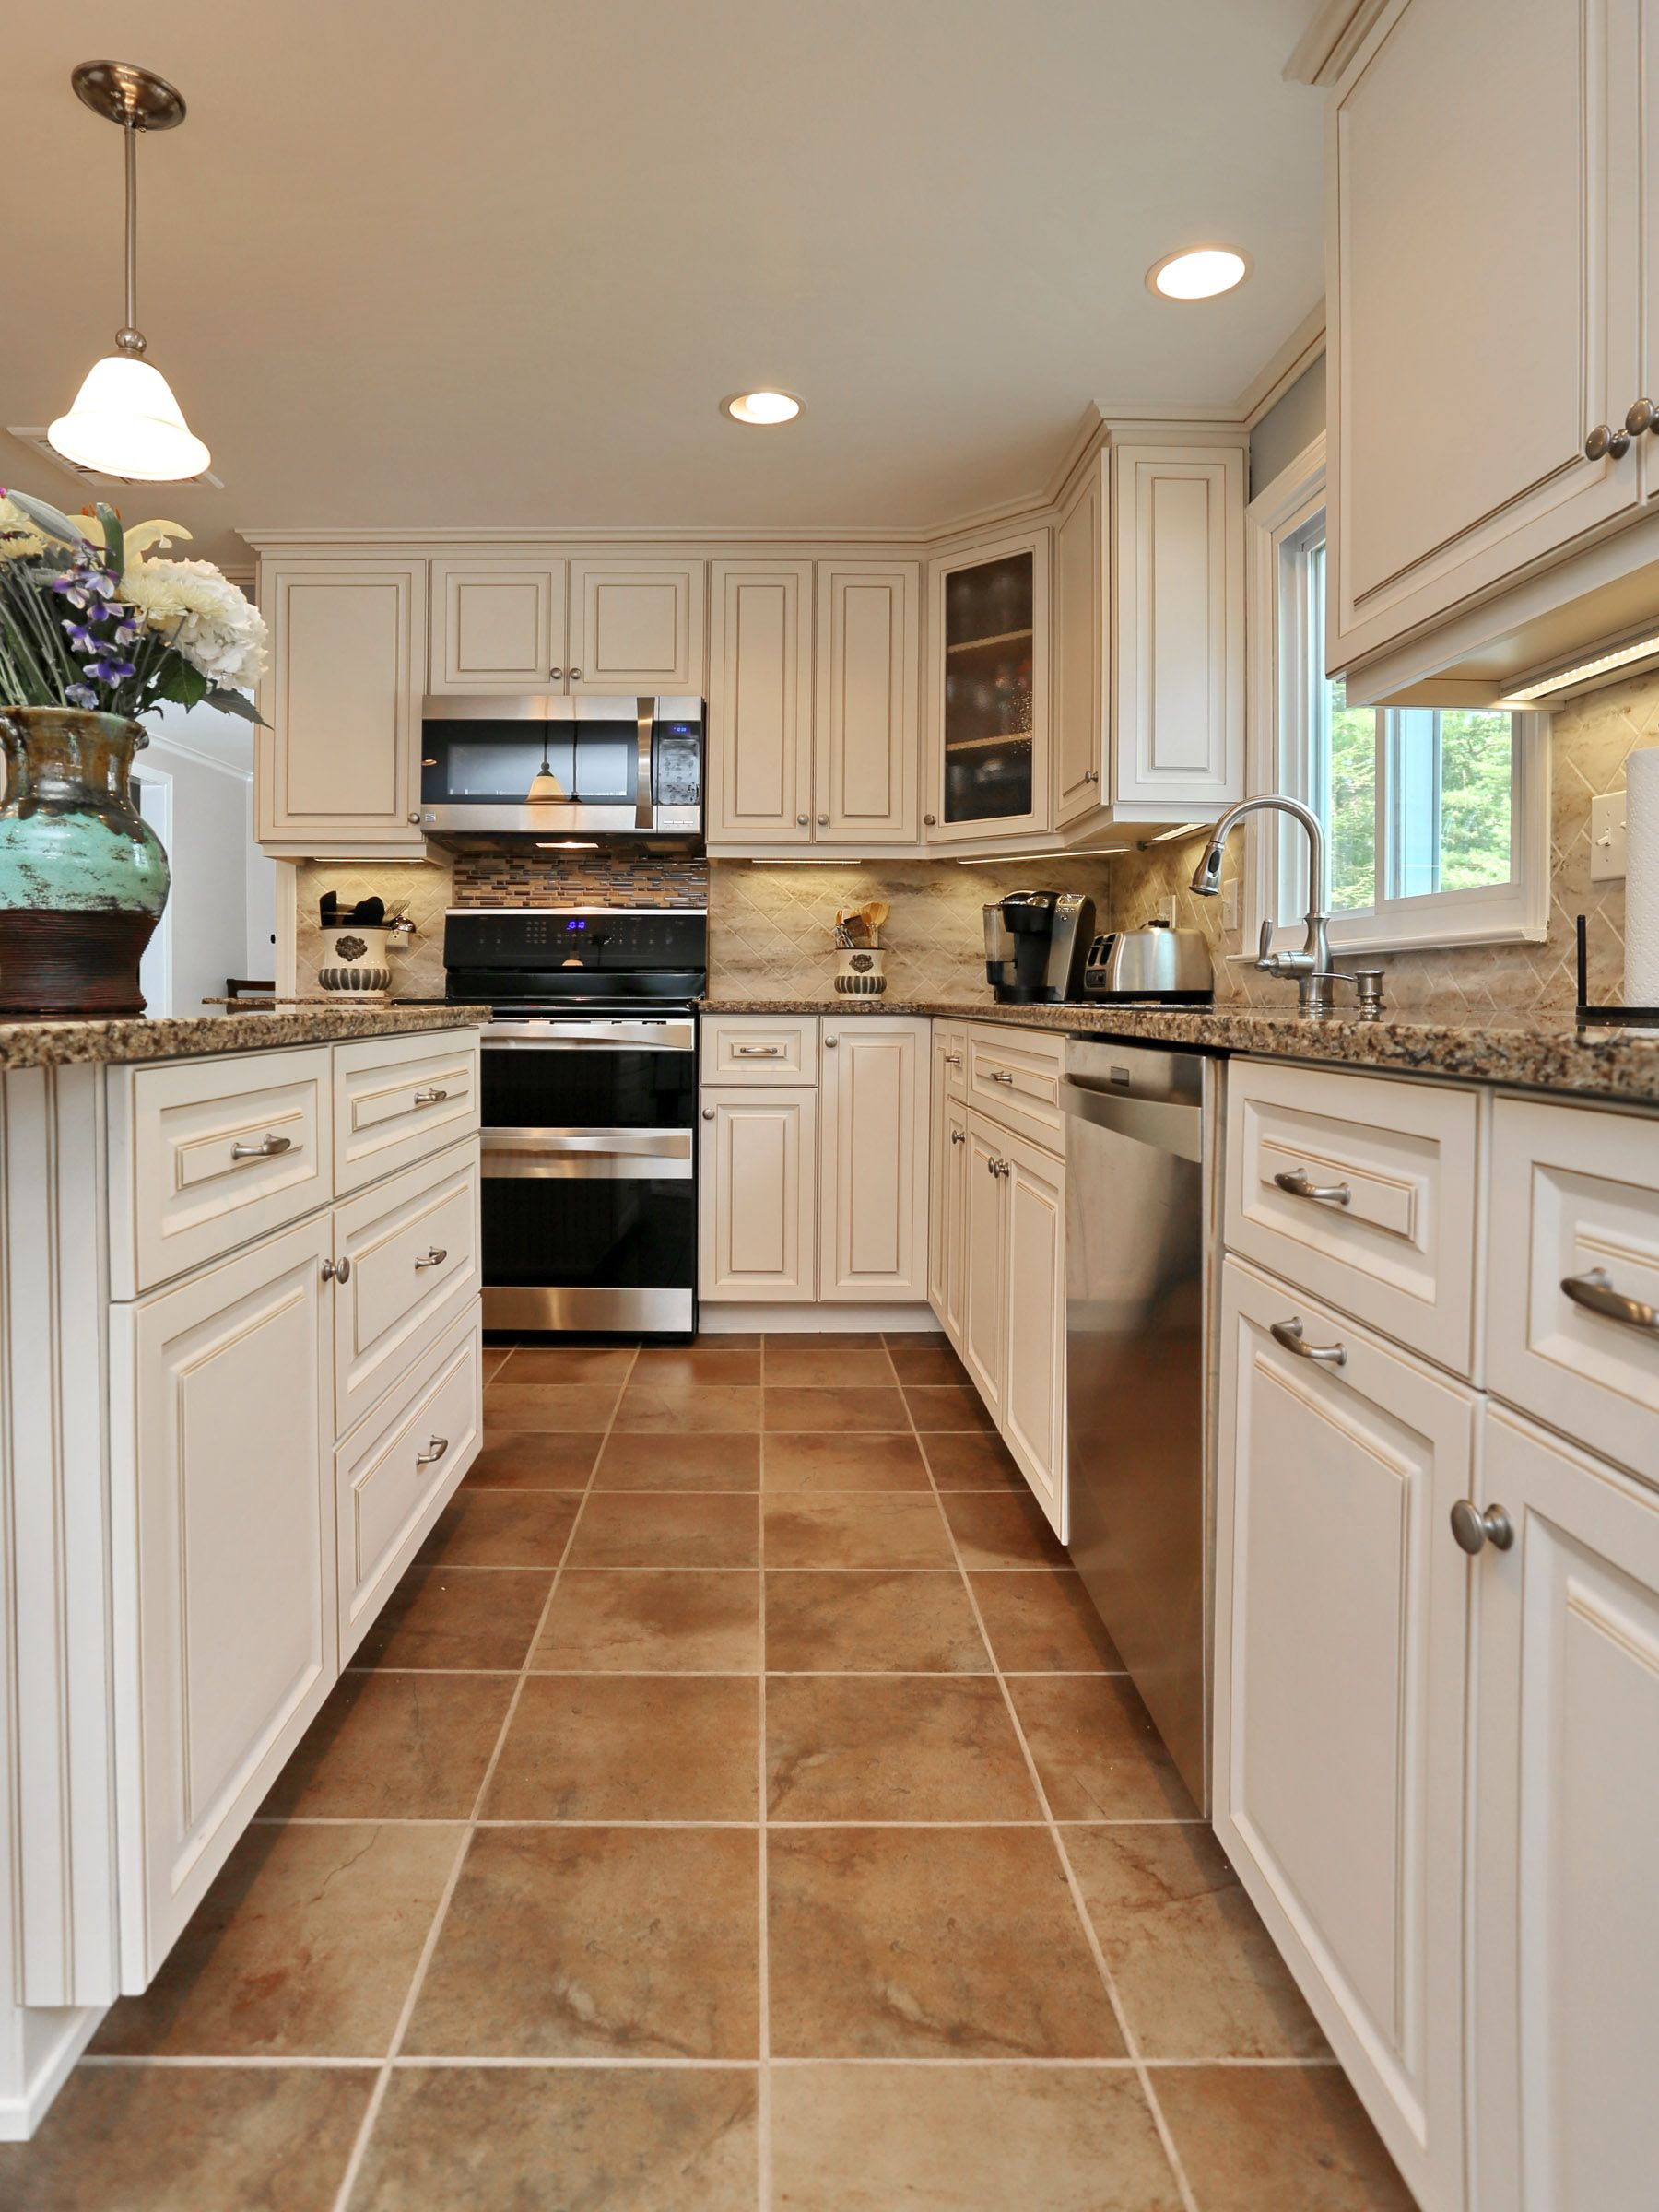 White Cabinets Kitchen Tile Floor Have You Ever Seen A Canterbury Kitchen  Quartz Countertops